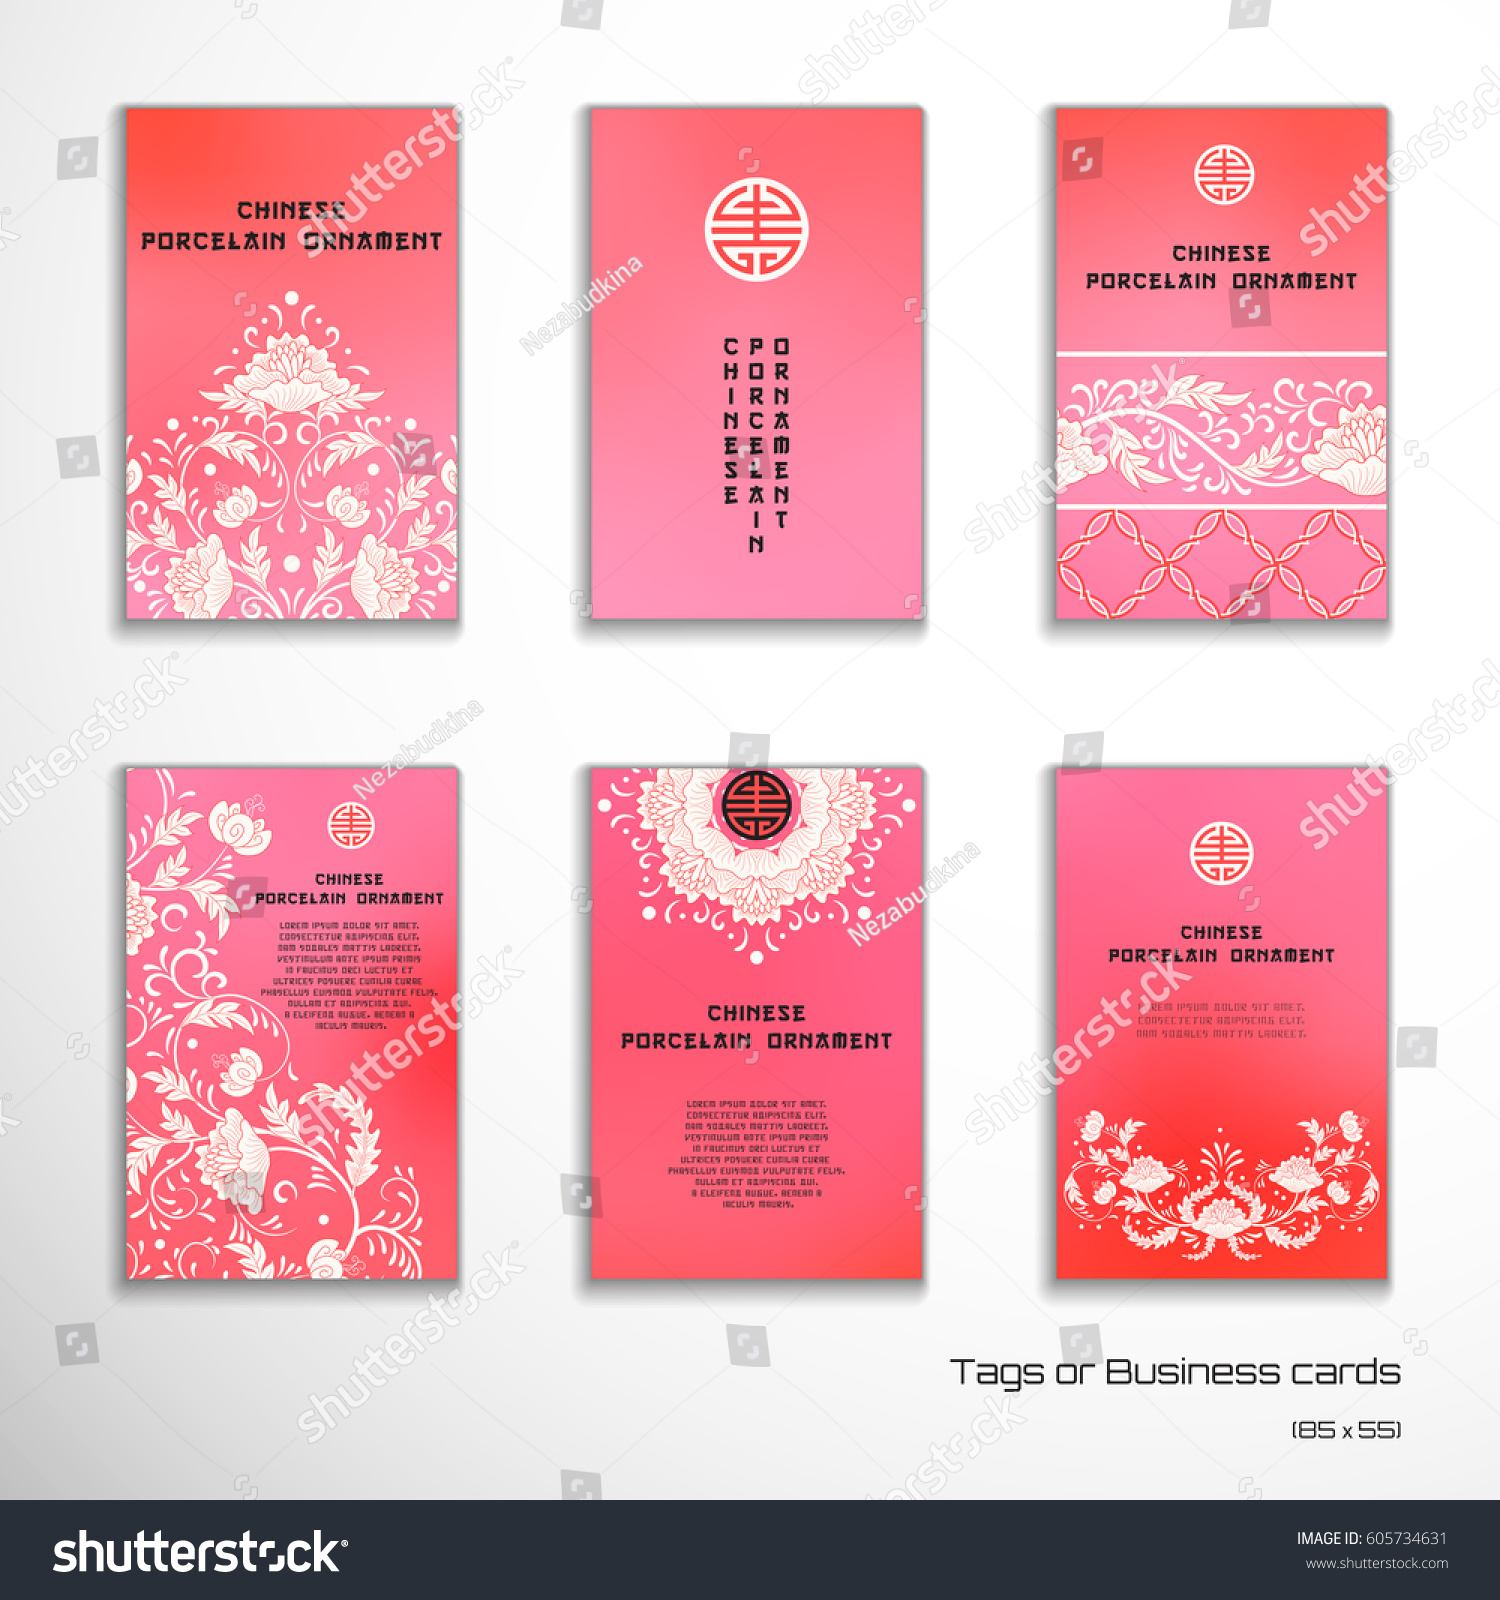 Set Six Vertical Business Cards Tags Stock Vector 605734631 ...